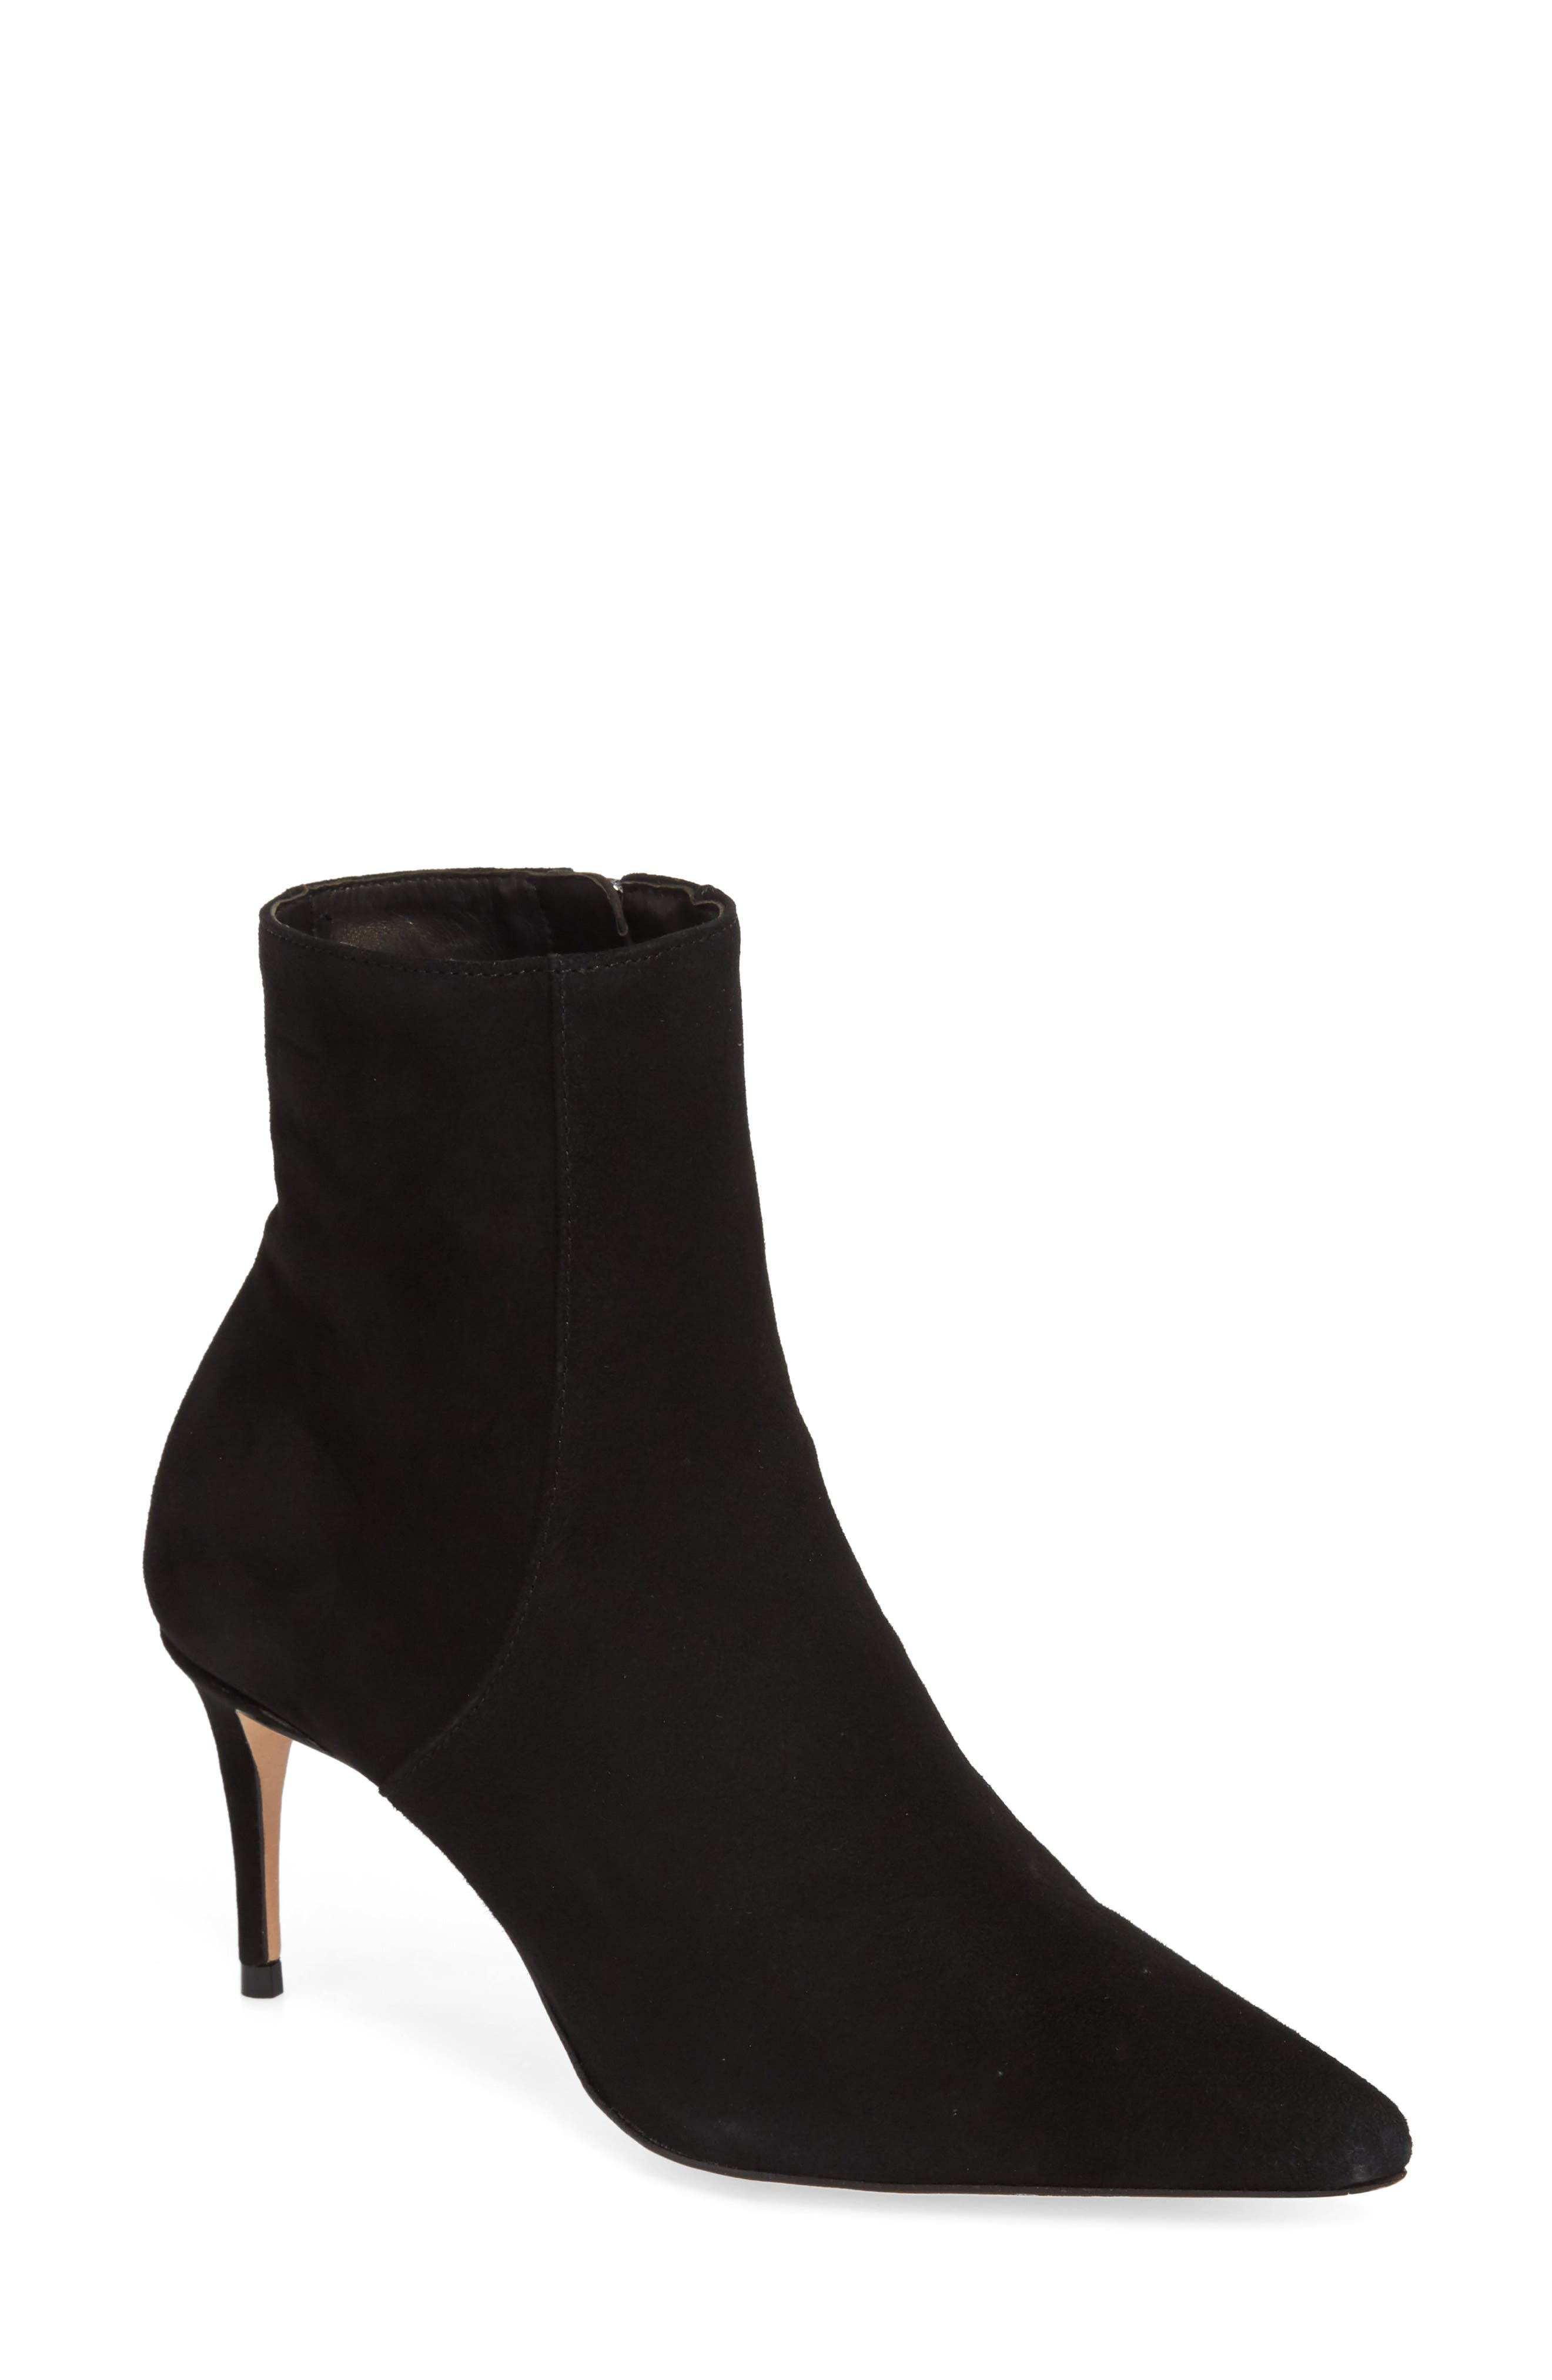 Bette Bootie,                         Main,                         color, BLACK SUEDE